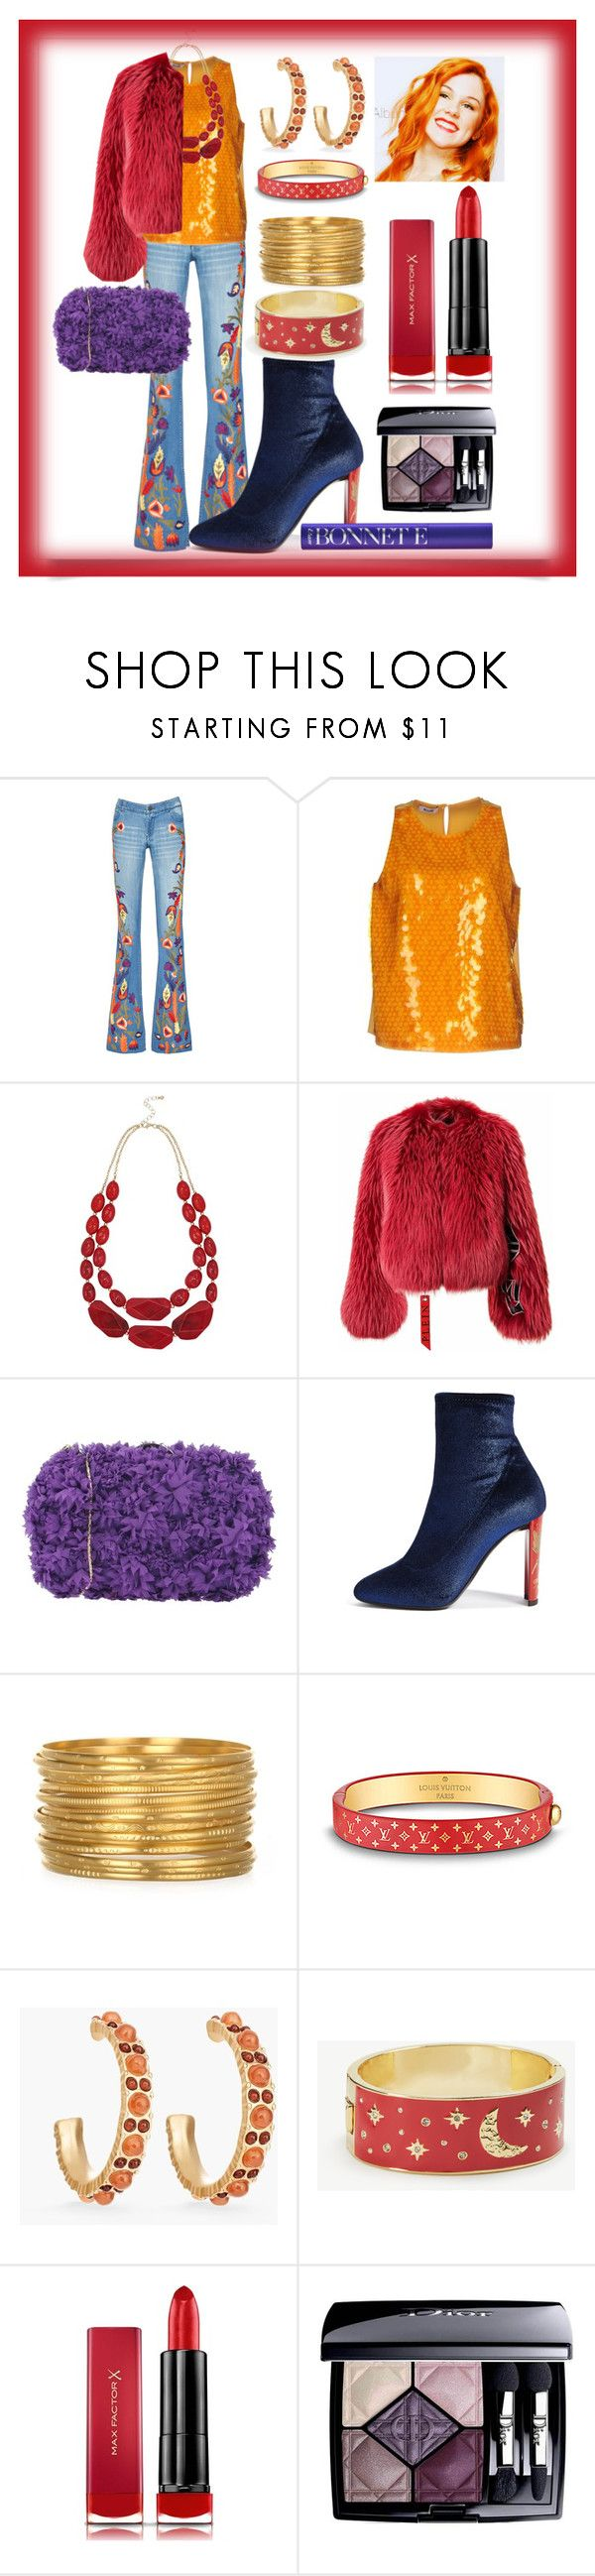 """She's Got Character"" by wildorchid21-1 ❤ liked on Polyvore featuring Alice + Olivia, Moschino Cheap & Chic, M&Co, Chiara P, Giuseppe Zanotti, Louis Vuitton, Chico's, Ann Taylor, Max Factor and Christian Dior"